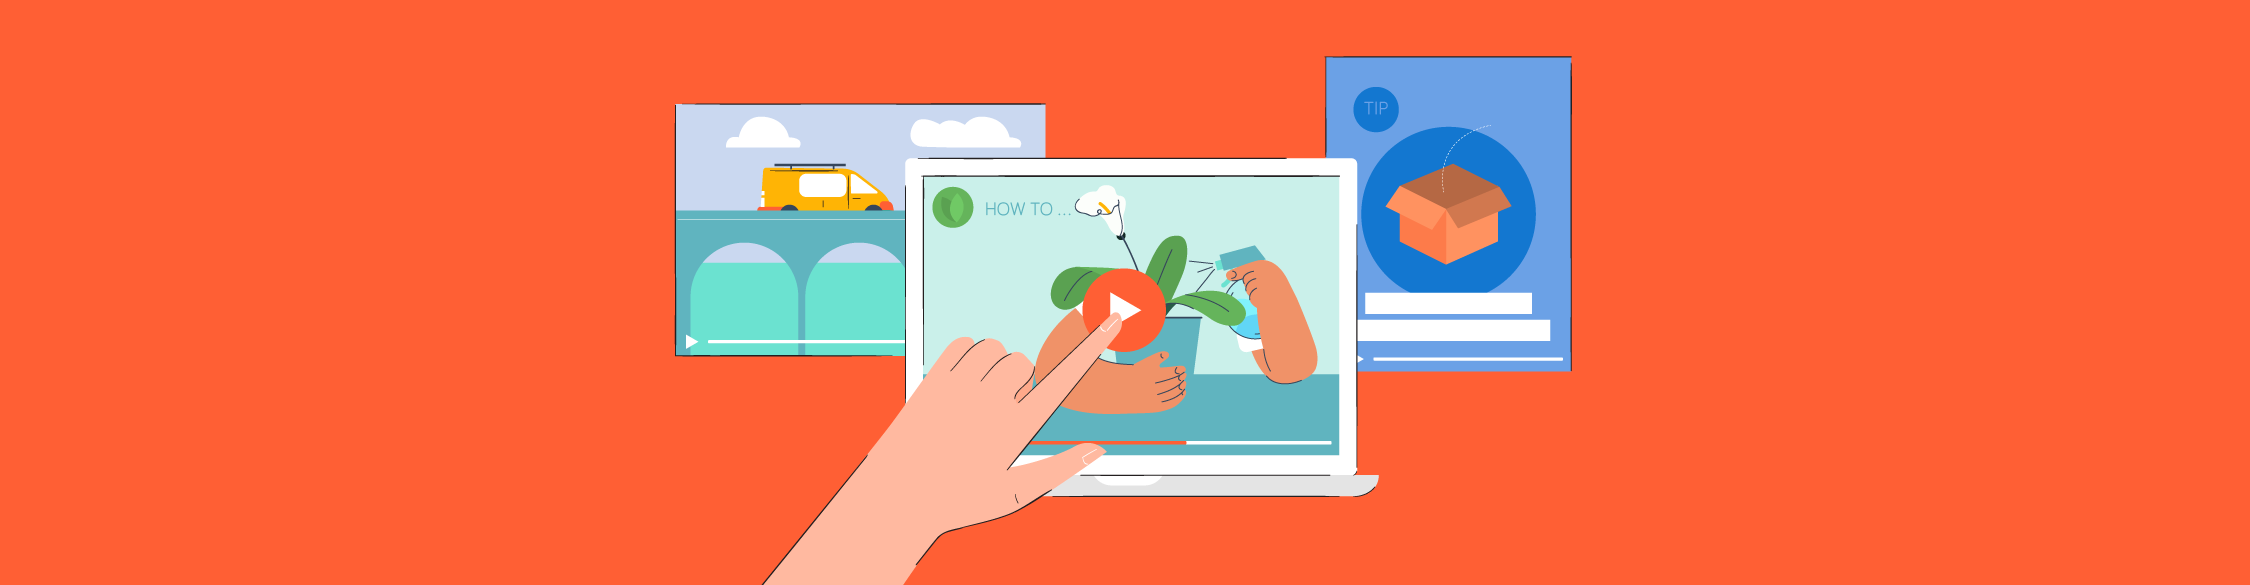 13 Explainer Video Software for Animated Explainers [2021]